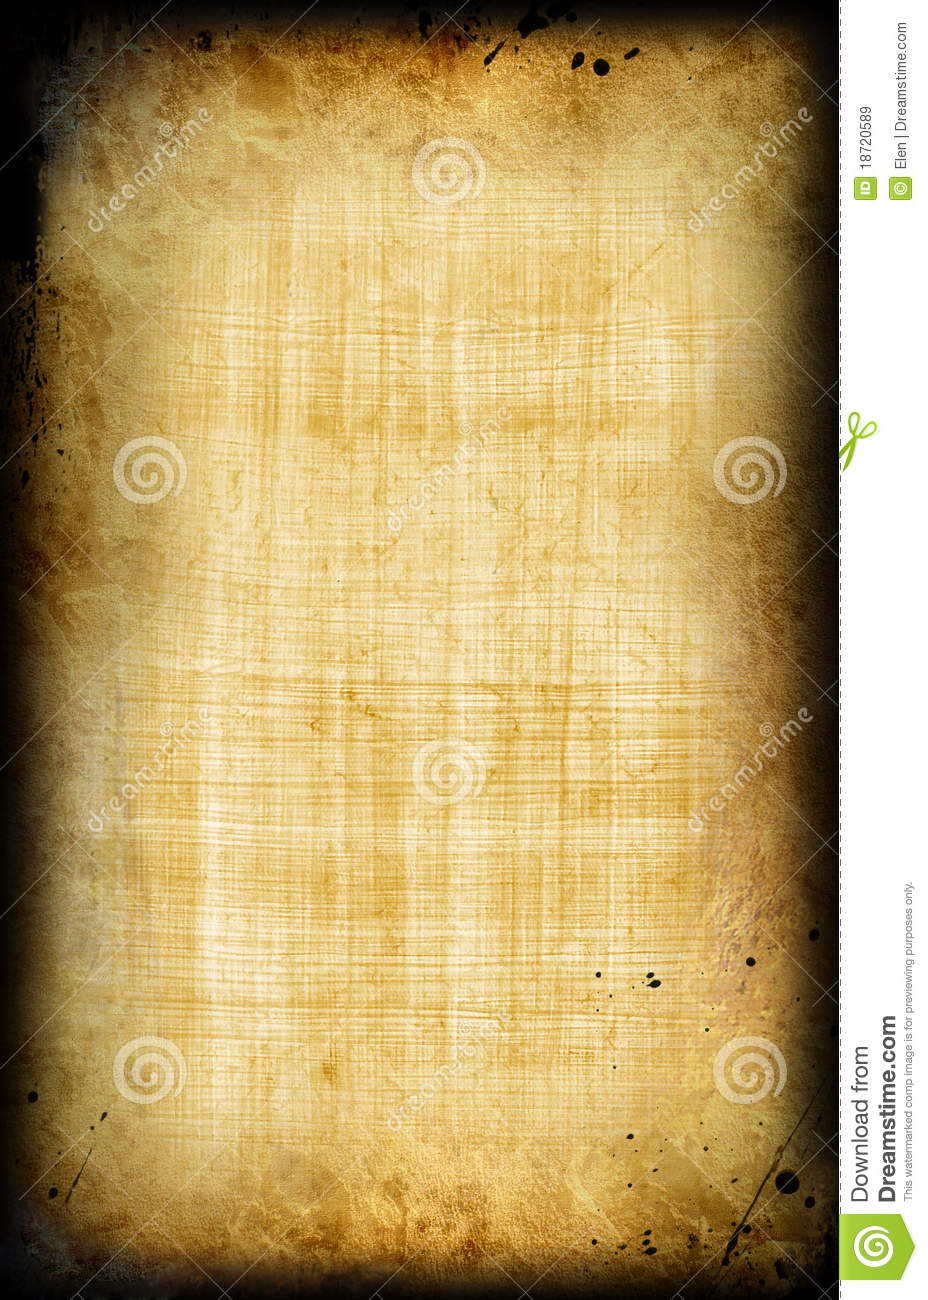 Old Wood Wallpaper Hd Egyptian Old Papyrus Stock Image Image Of Paper Pattern